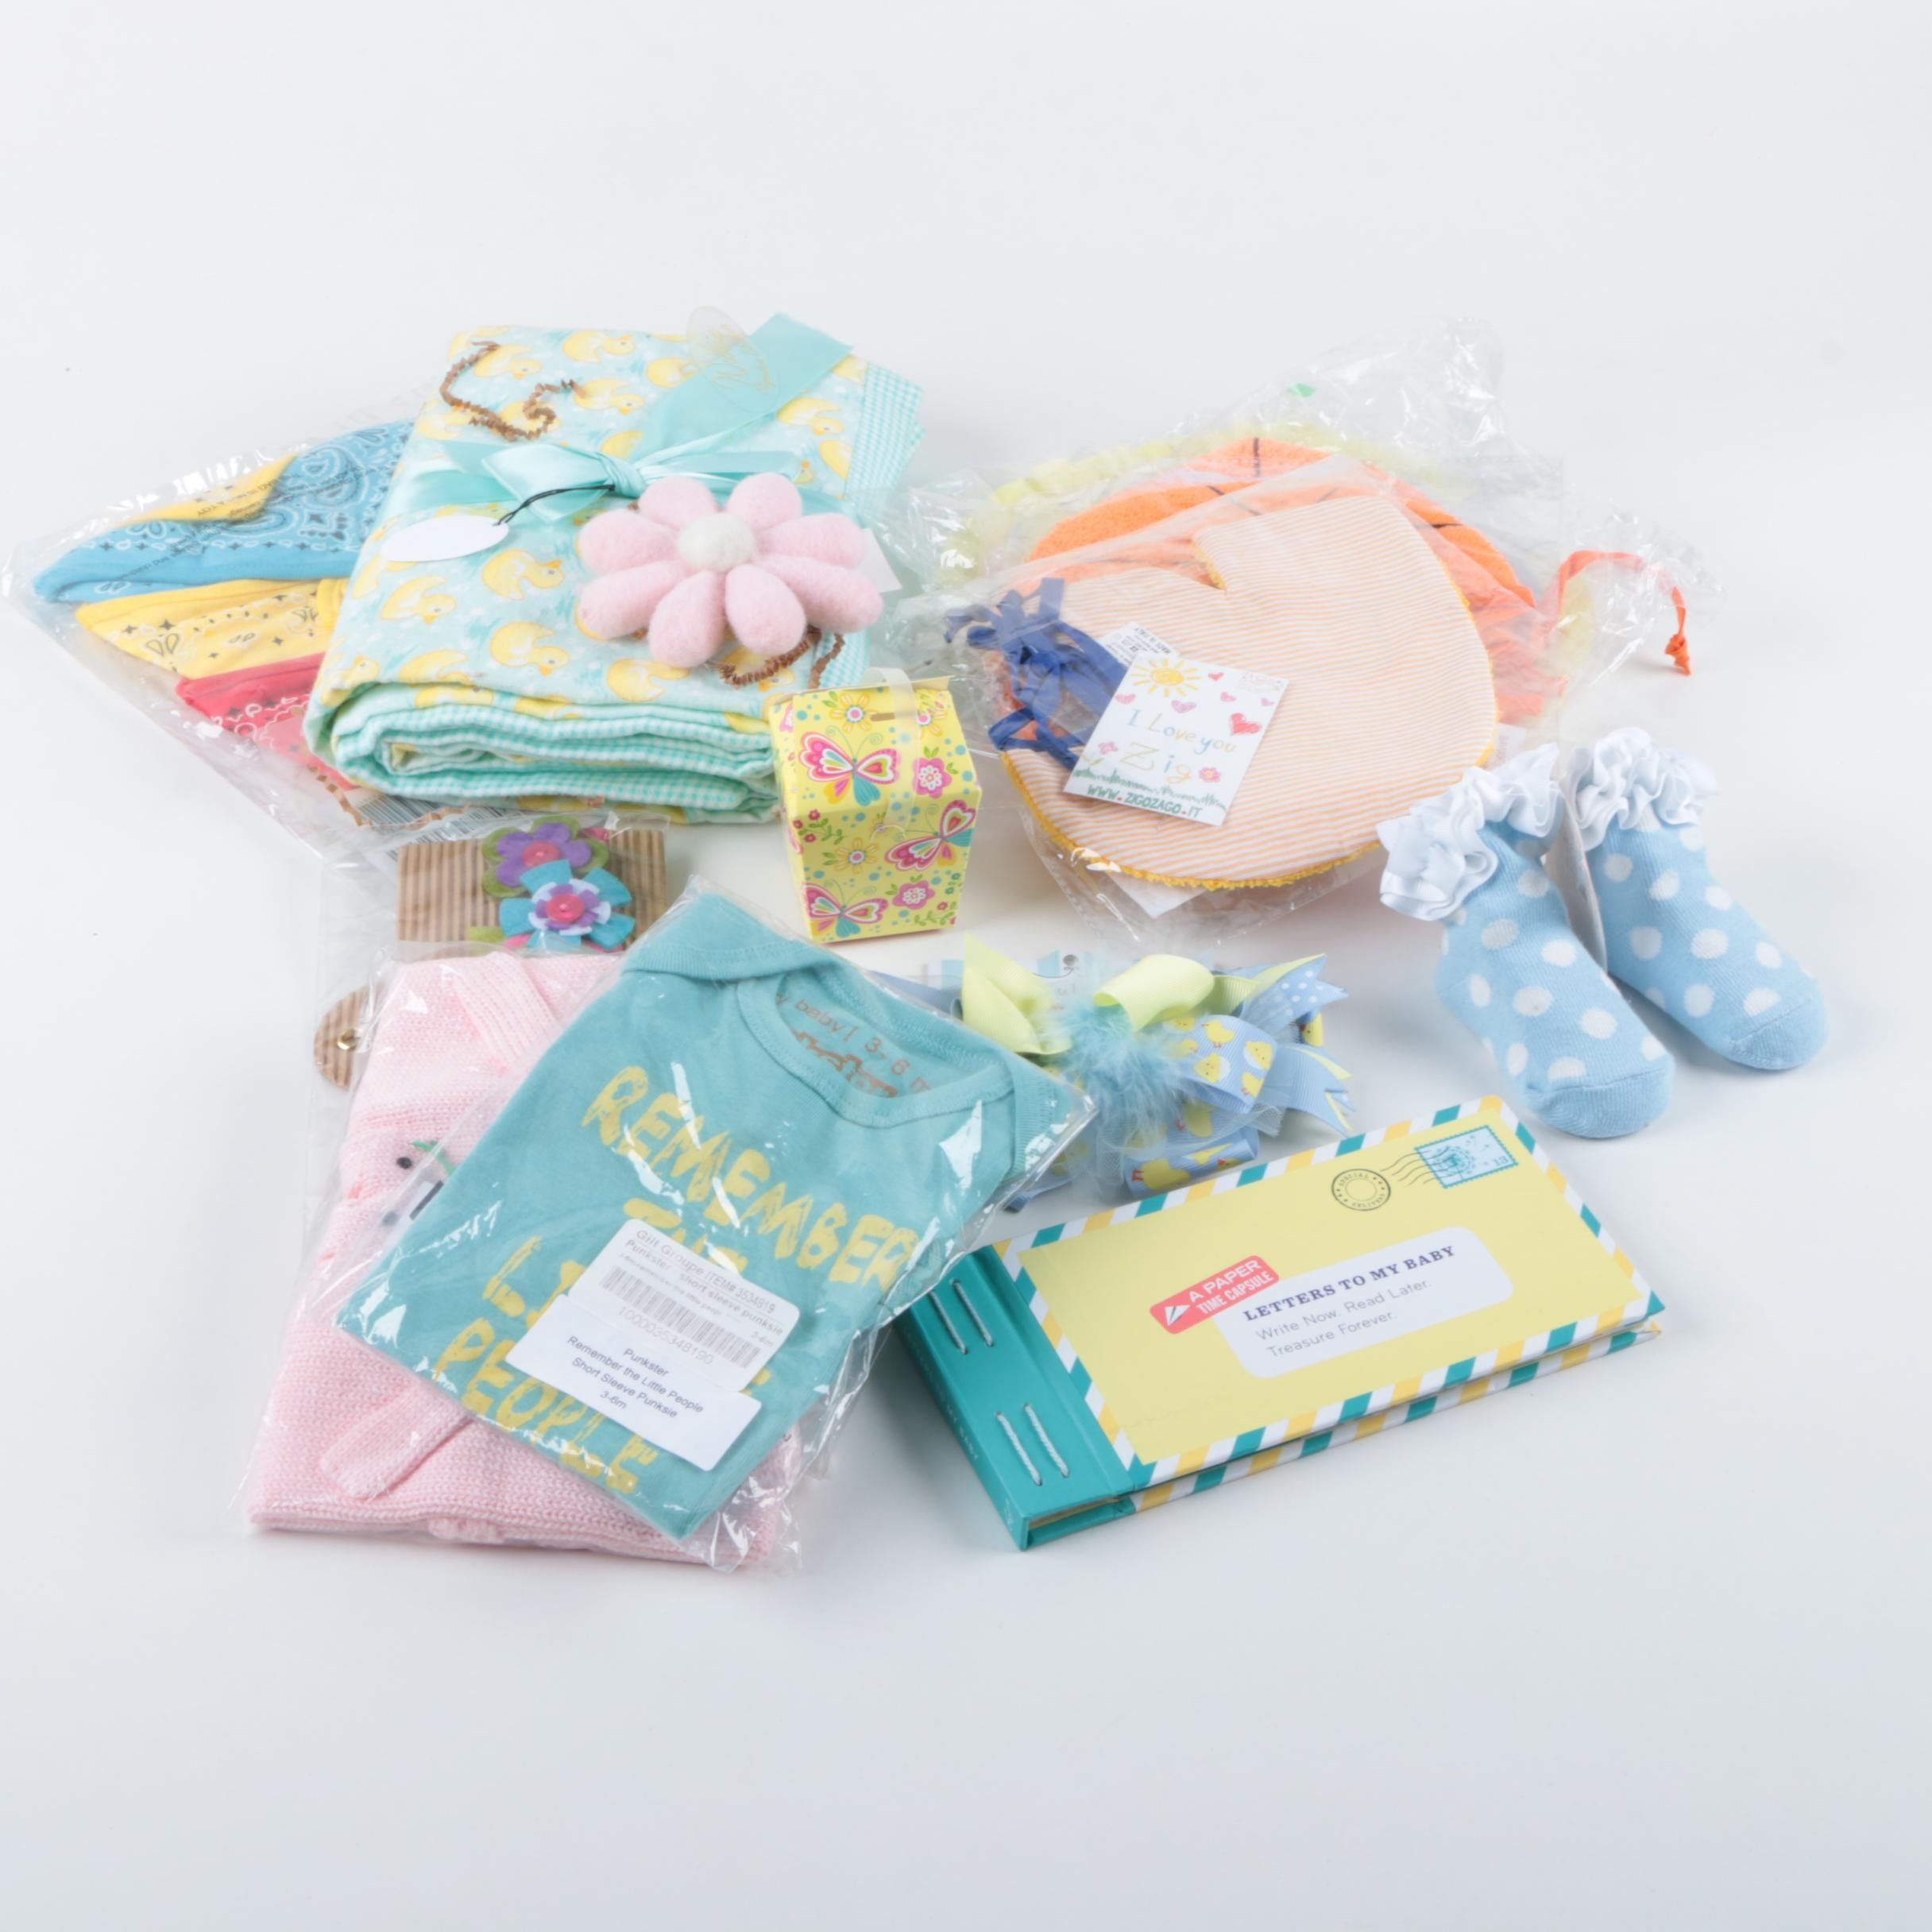 Infant Bibs, Clothes, Blanket and Accessories